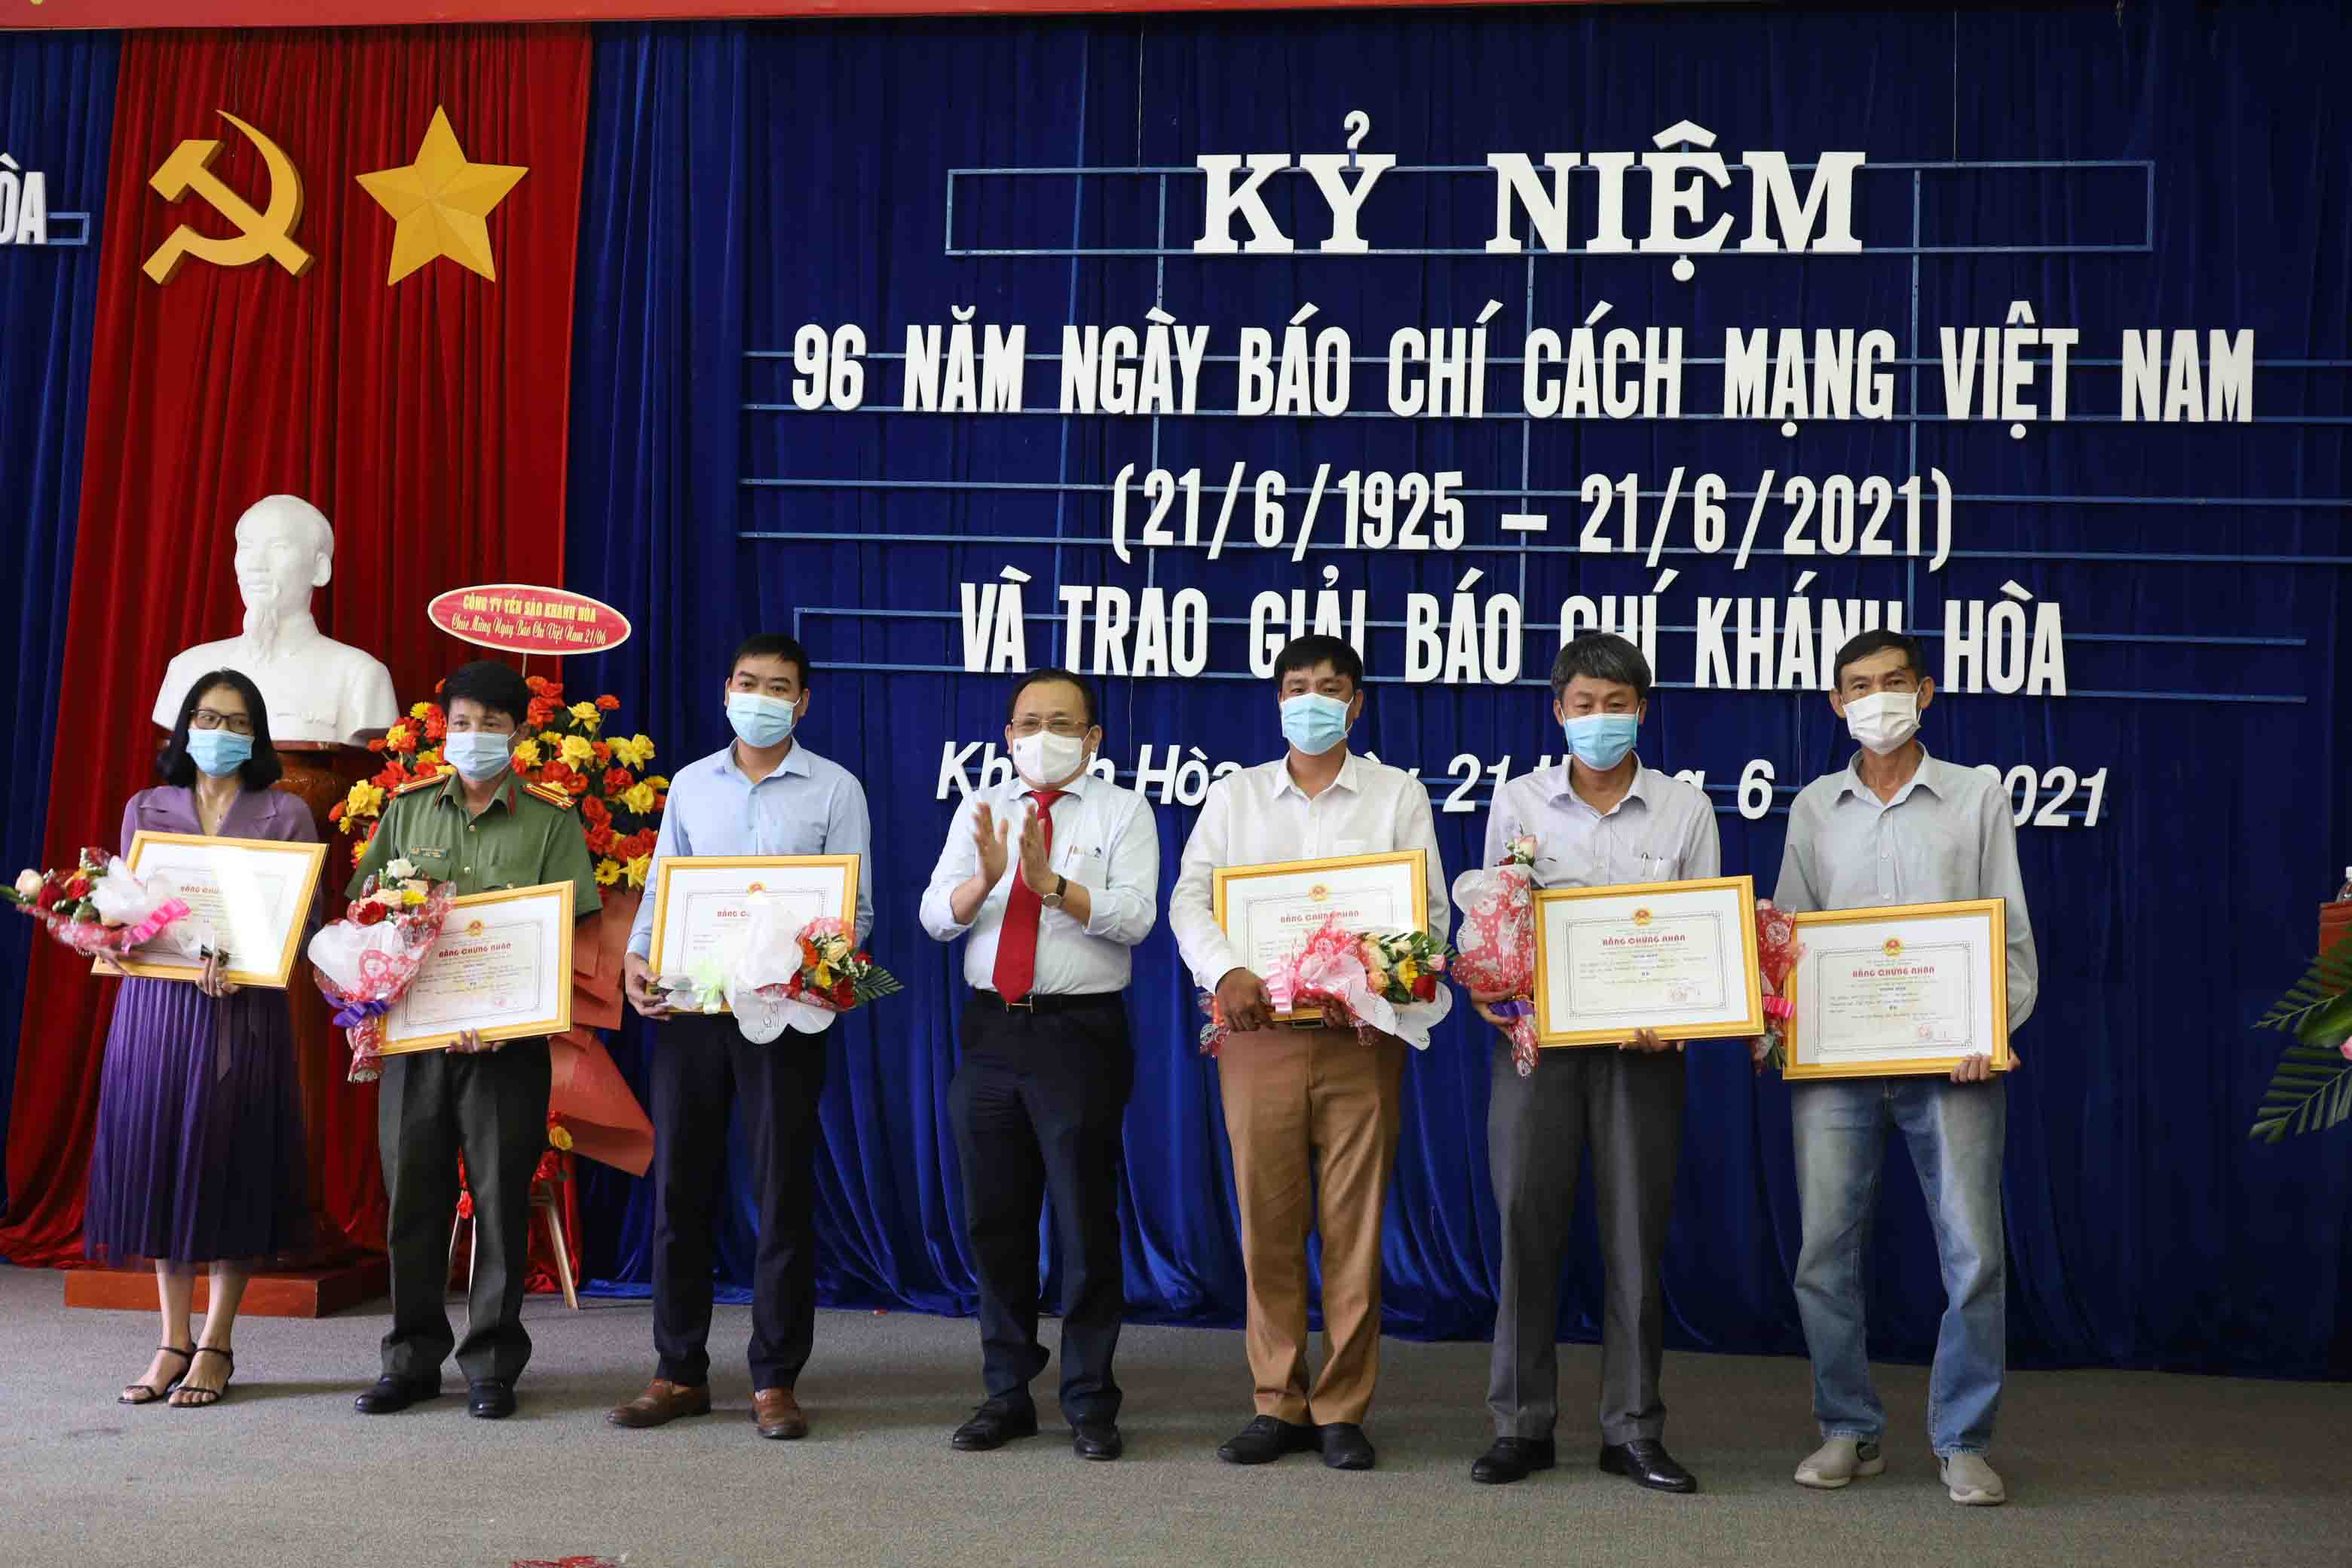 Le Huu Hoang presenting prizes to third-prize winners